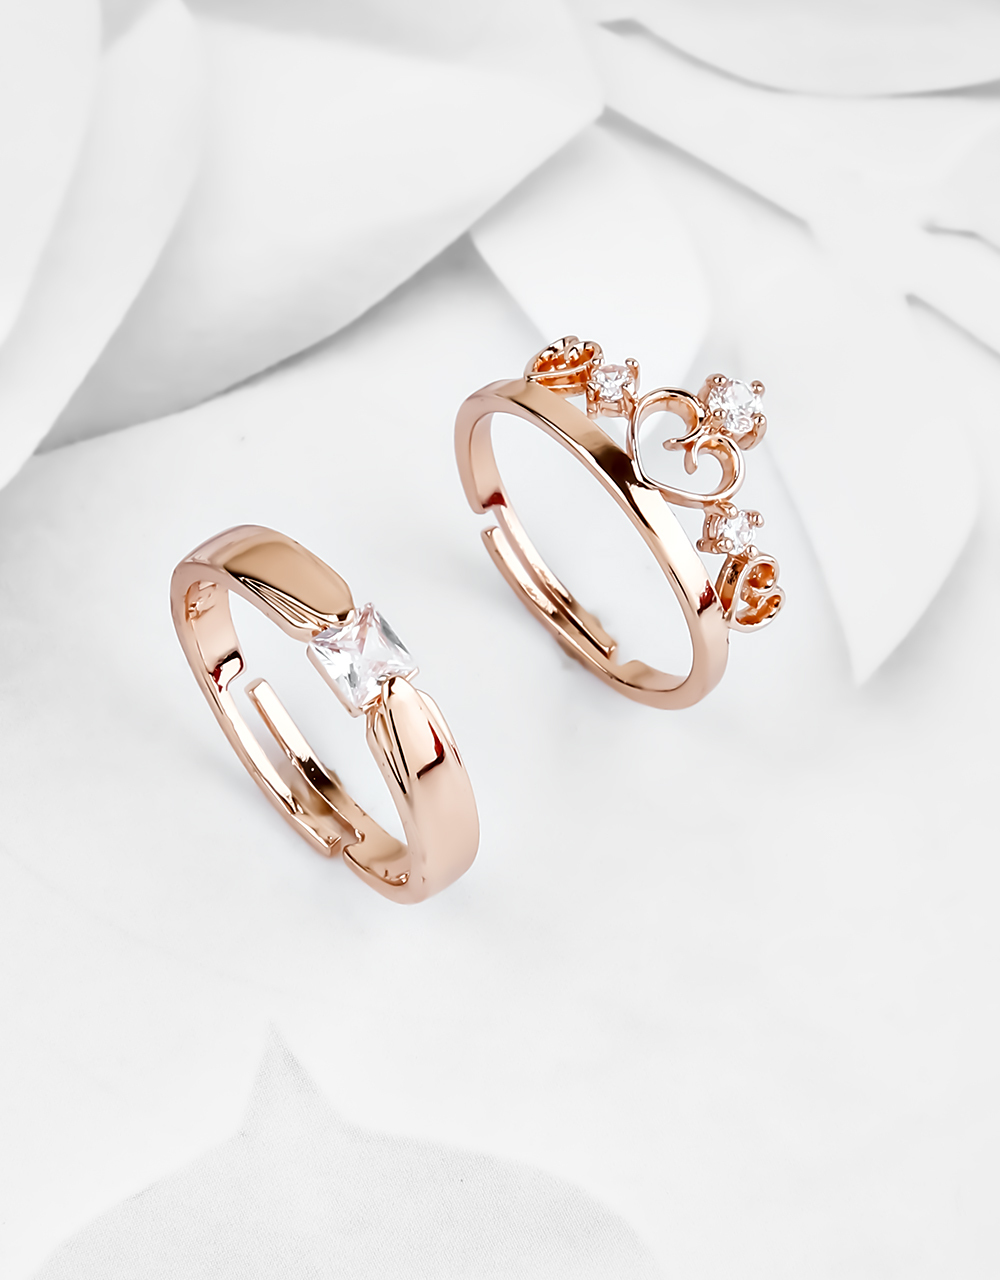 Rose Gold Finish American Diamond Studded Couple Ring